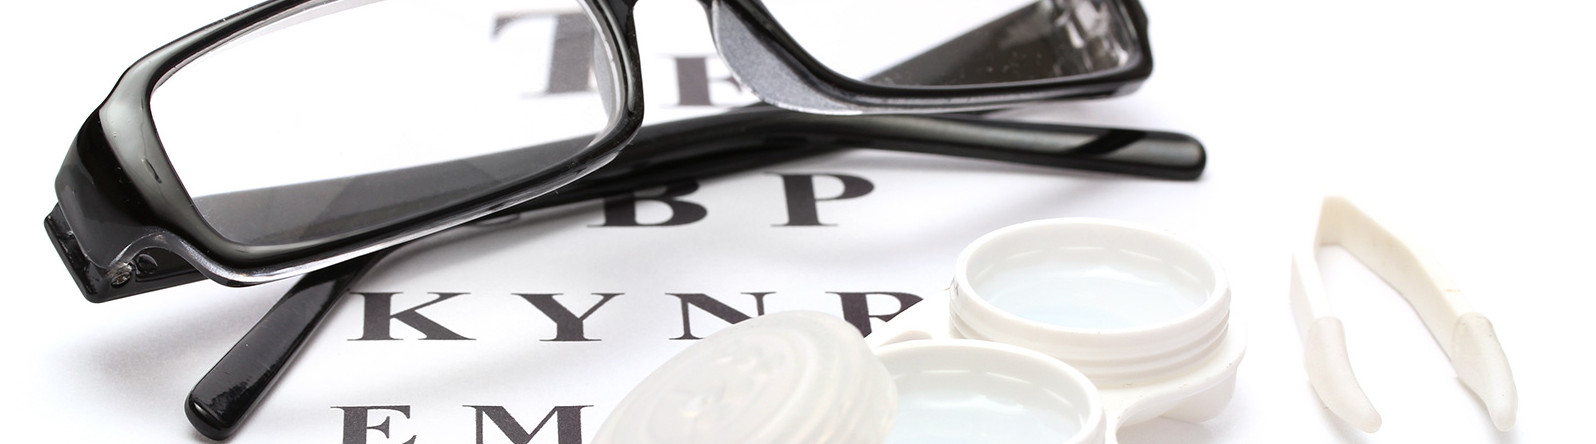 Ryan's opticians Wexford, glasses contact lenses, eye health